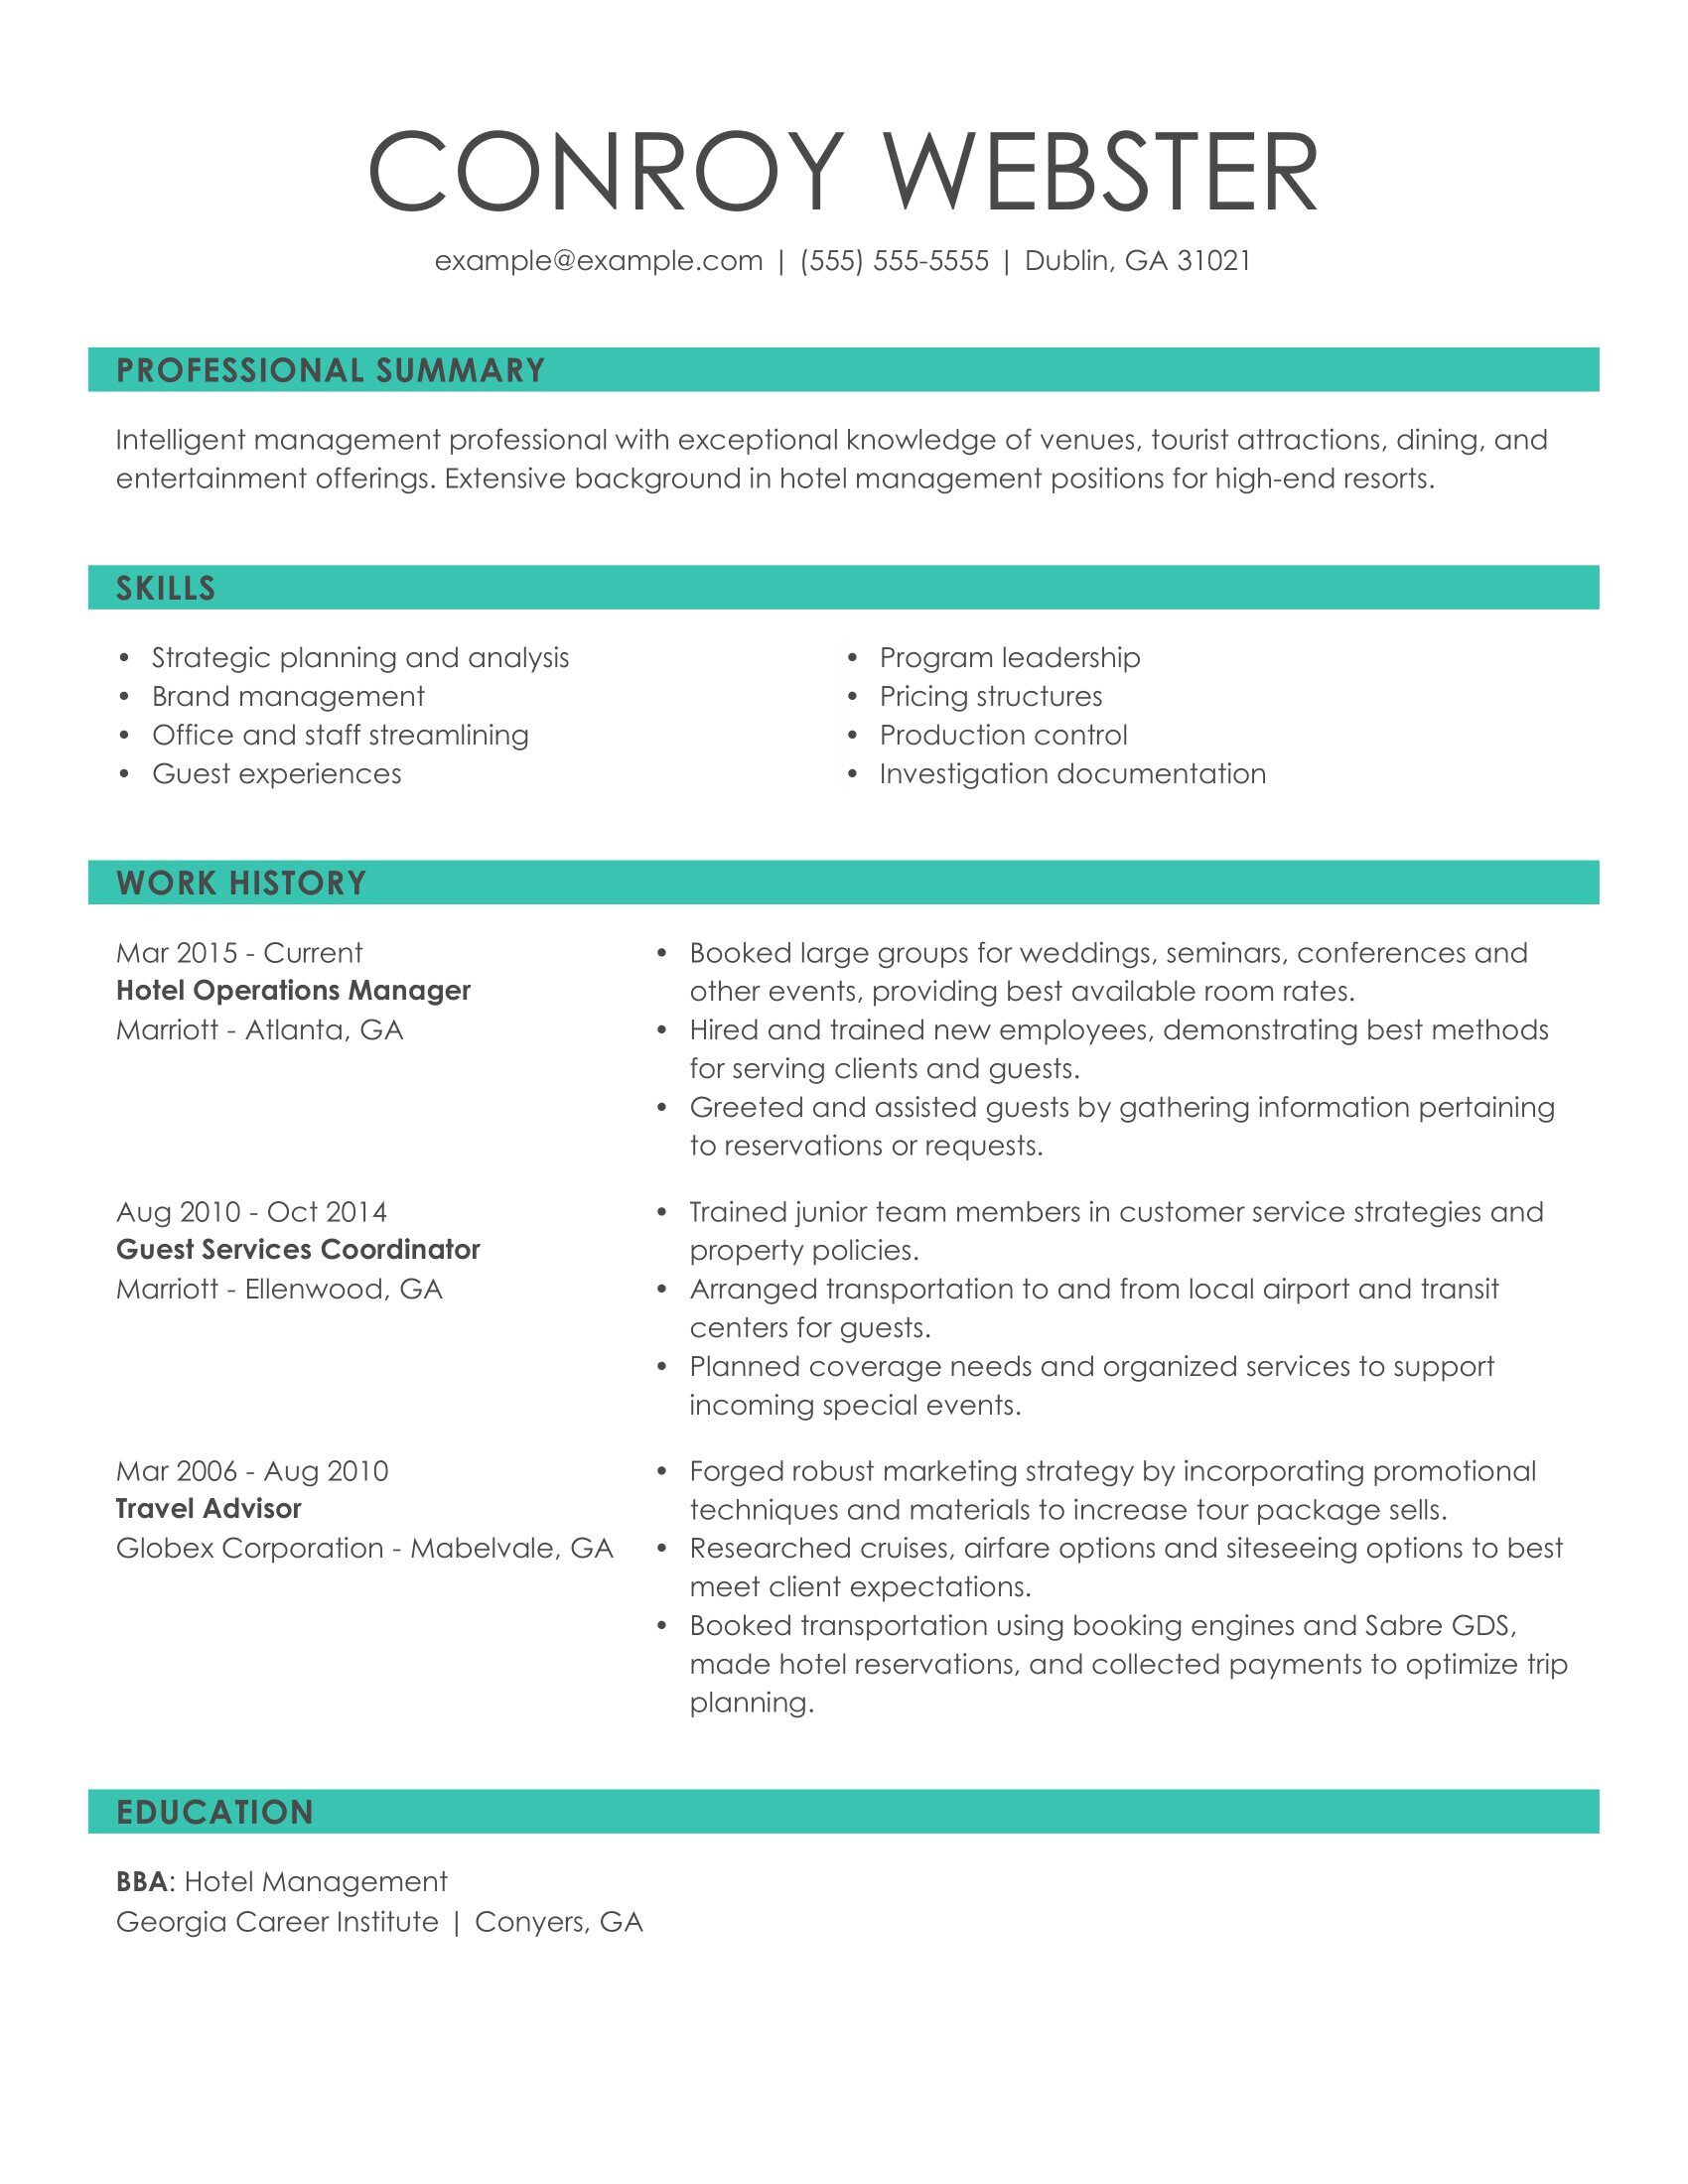 see our top customer service resume example good summary for hotel ops manager combat Resume Good Customer Service Summary For Resume